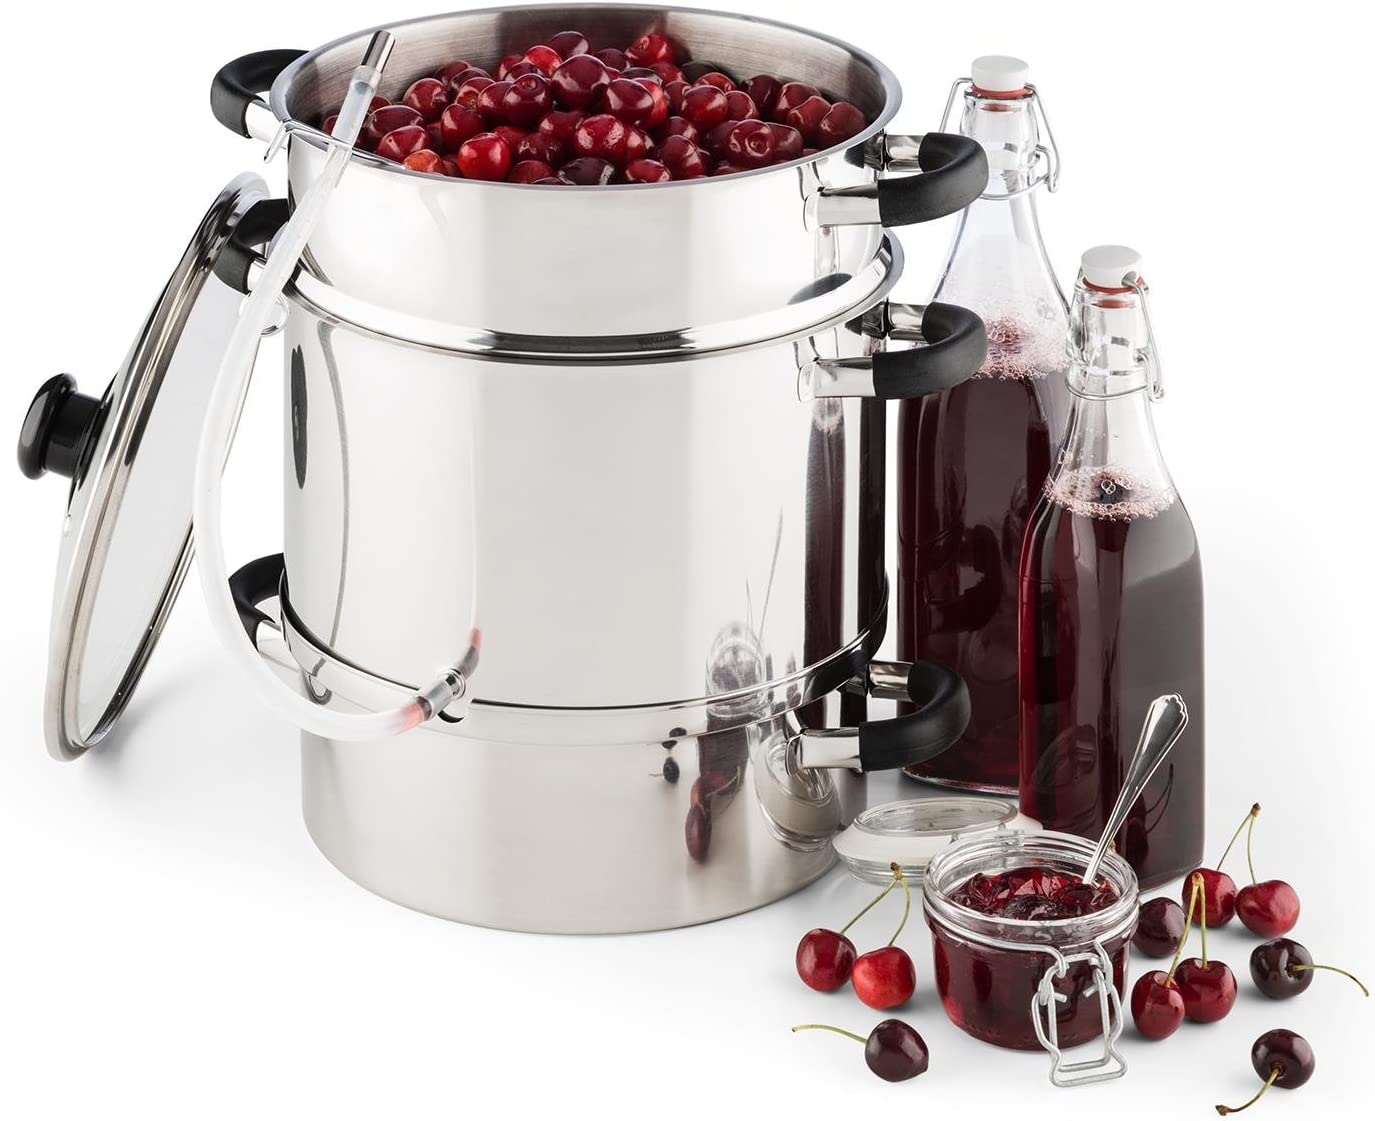 Klarstein Applebee Steam Electric Juicer 1500W, Ø25cm, 8 Litres, Fruit Juice Container, 2 Litres Capacity, Stainless Steel, Independent, Cool Touch